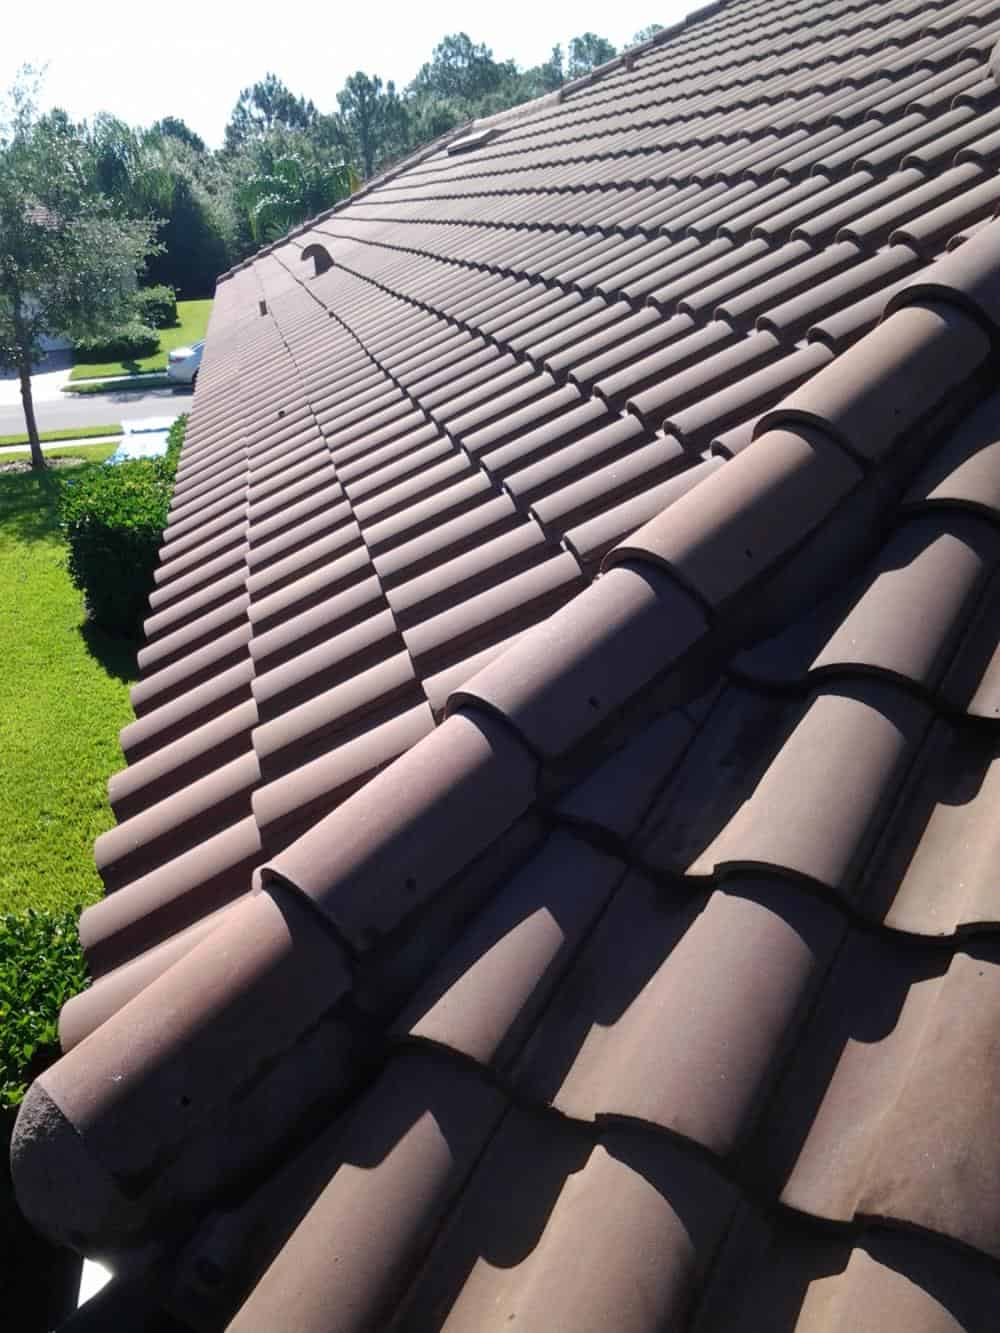 roof after, Naples Roof Cleaning, Fort Myers Roof Cleaners, Bonita Springs Roof Cleaner, Cape Coral Roof Cleaning, Roof Cleaning Company, Roof Cleaning Services, Pressure Washing Companies, Pressure Cleaning Companies, Pressure Washing Services, Pressure Cleaning Company, Paver Cleaning and Sealing, Roof Sealing